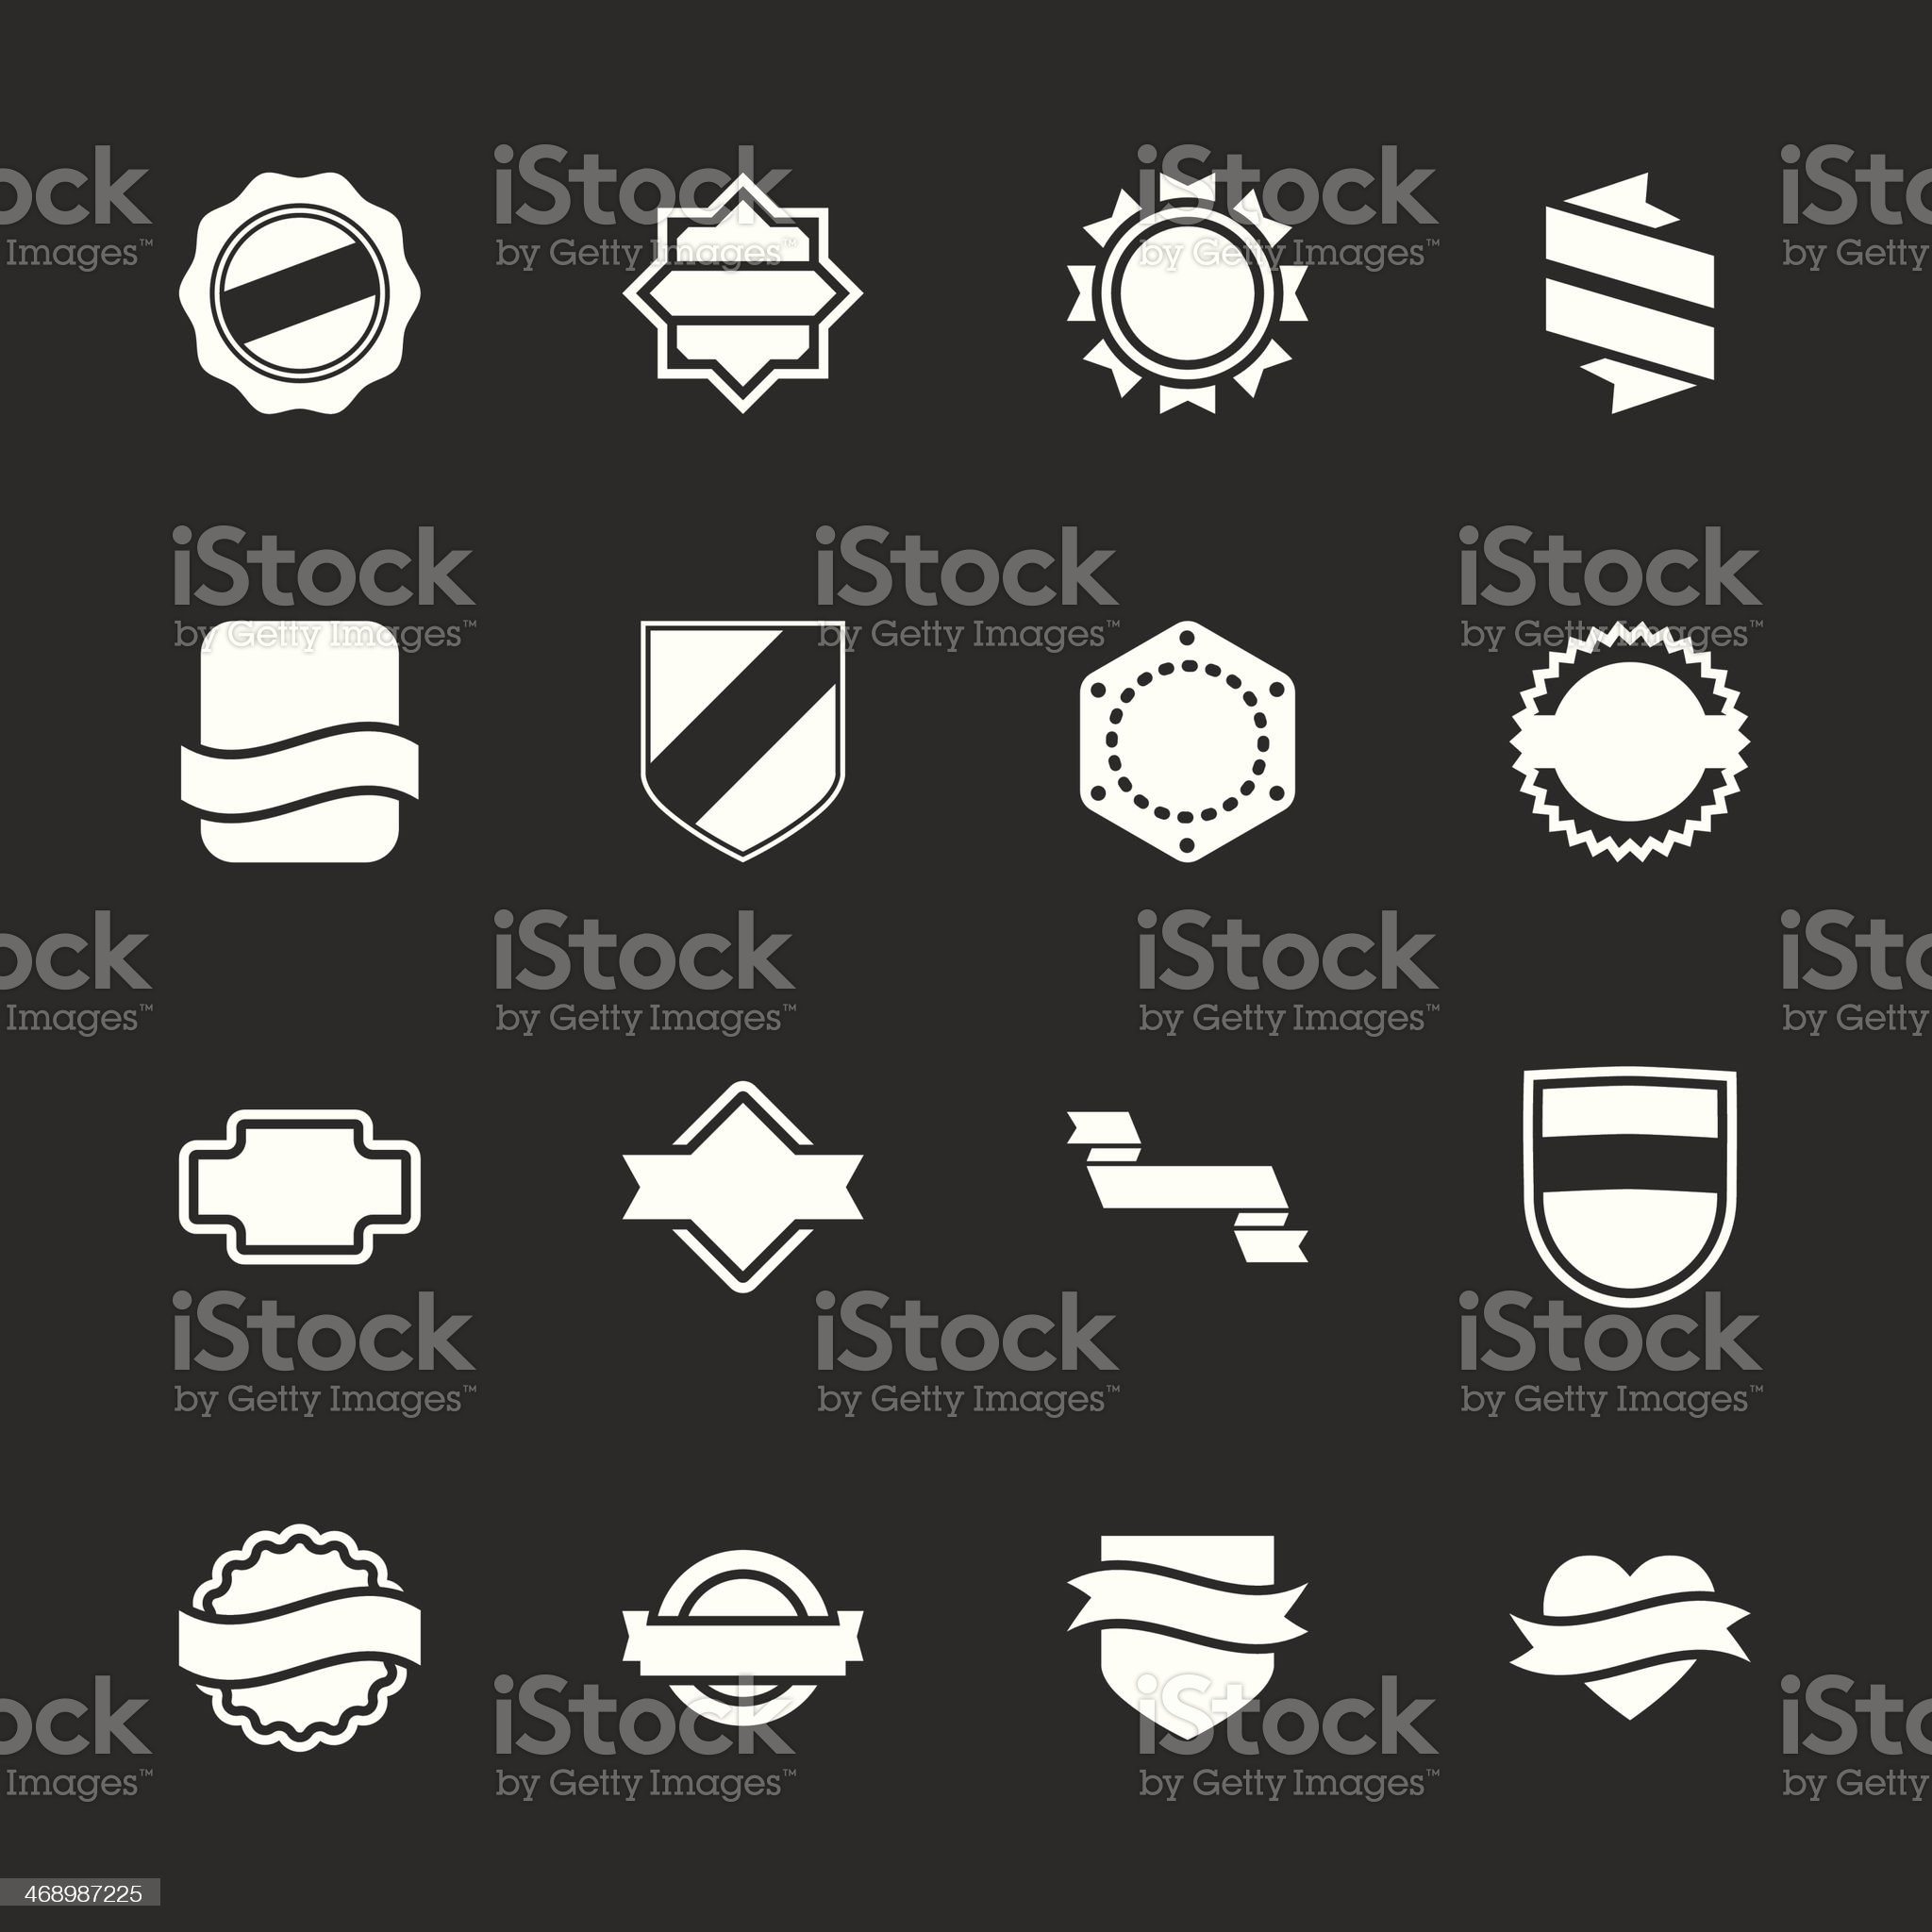 Label Icons Set 5 - White Series royalty-free stock vector art